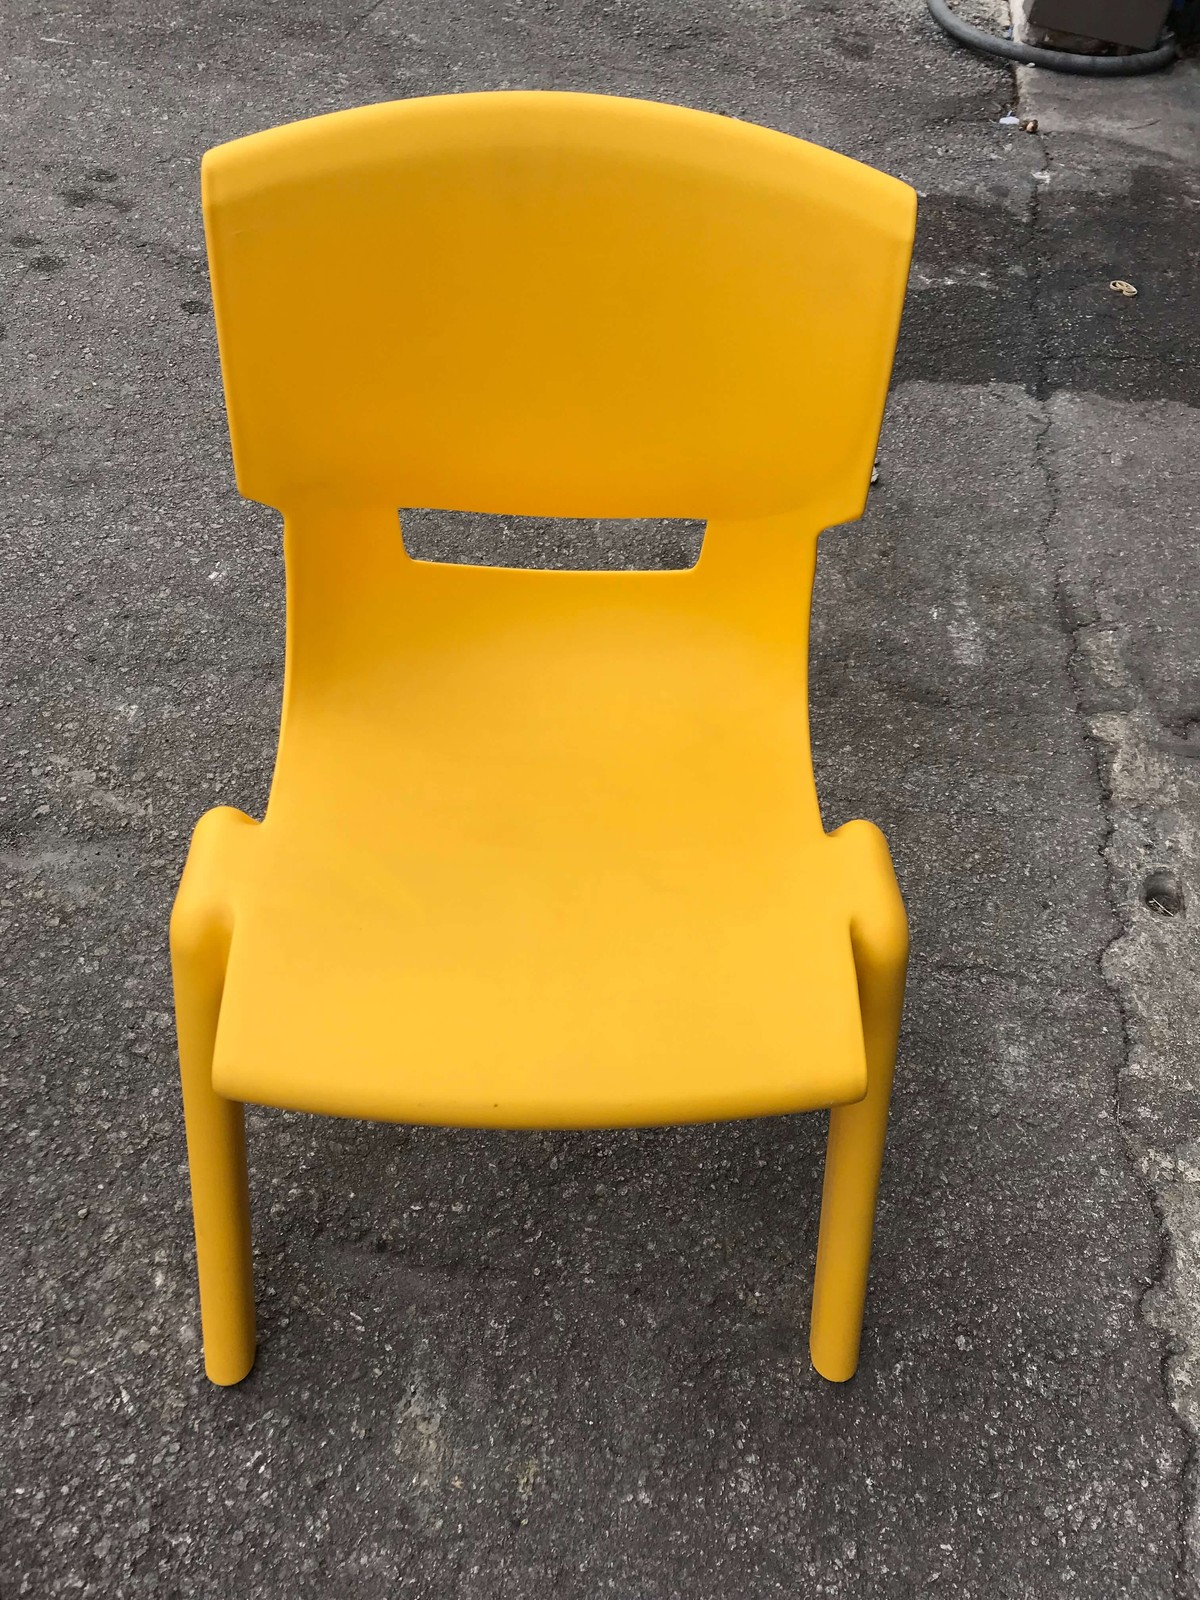 Kids Plastic Color Chairs